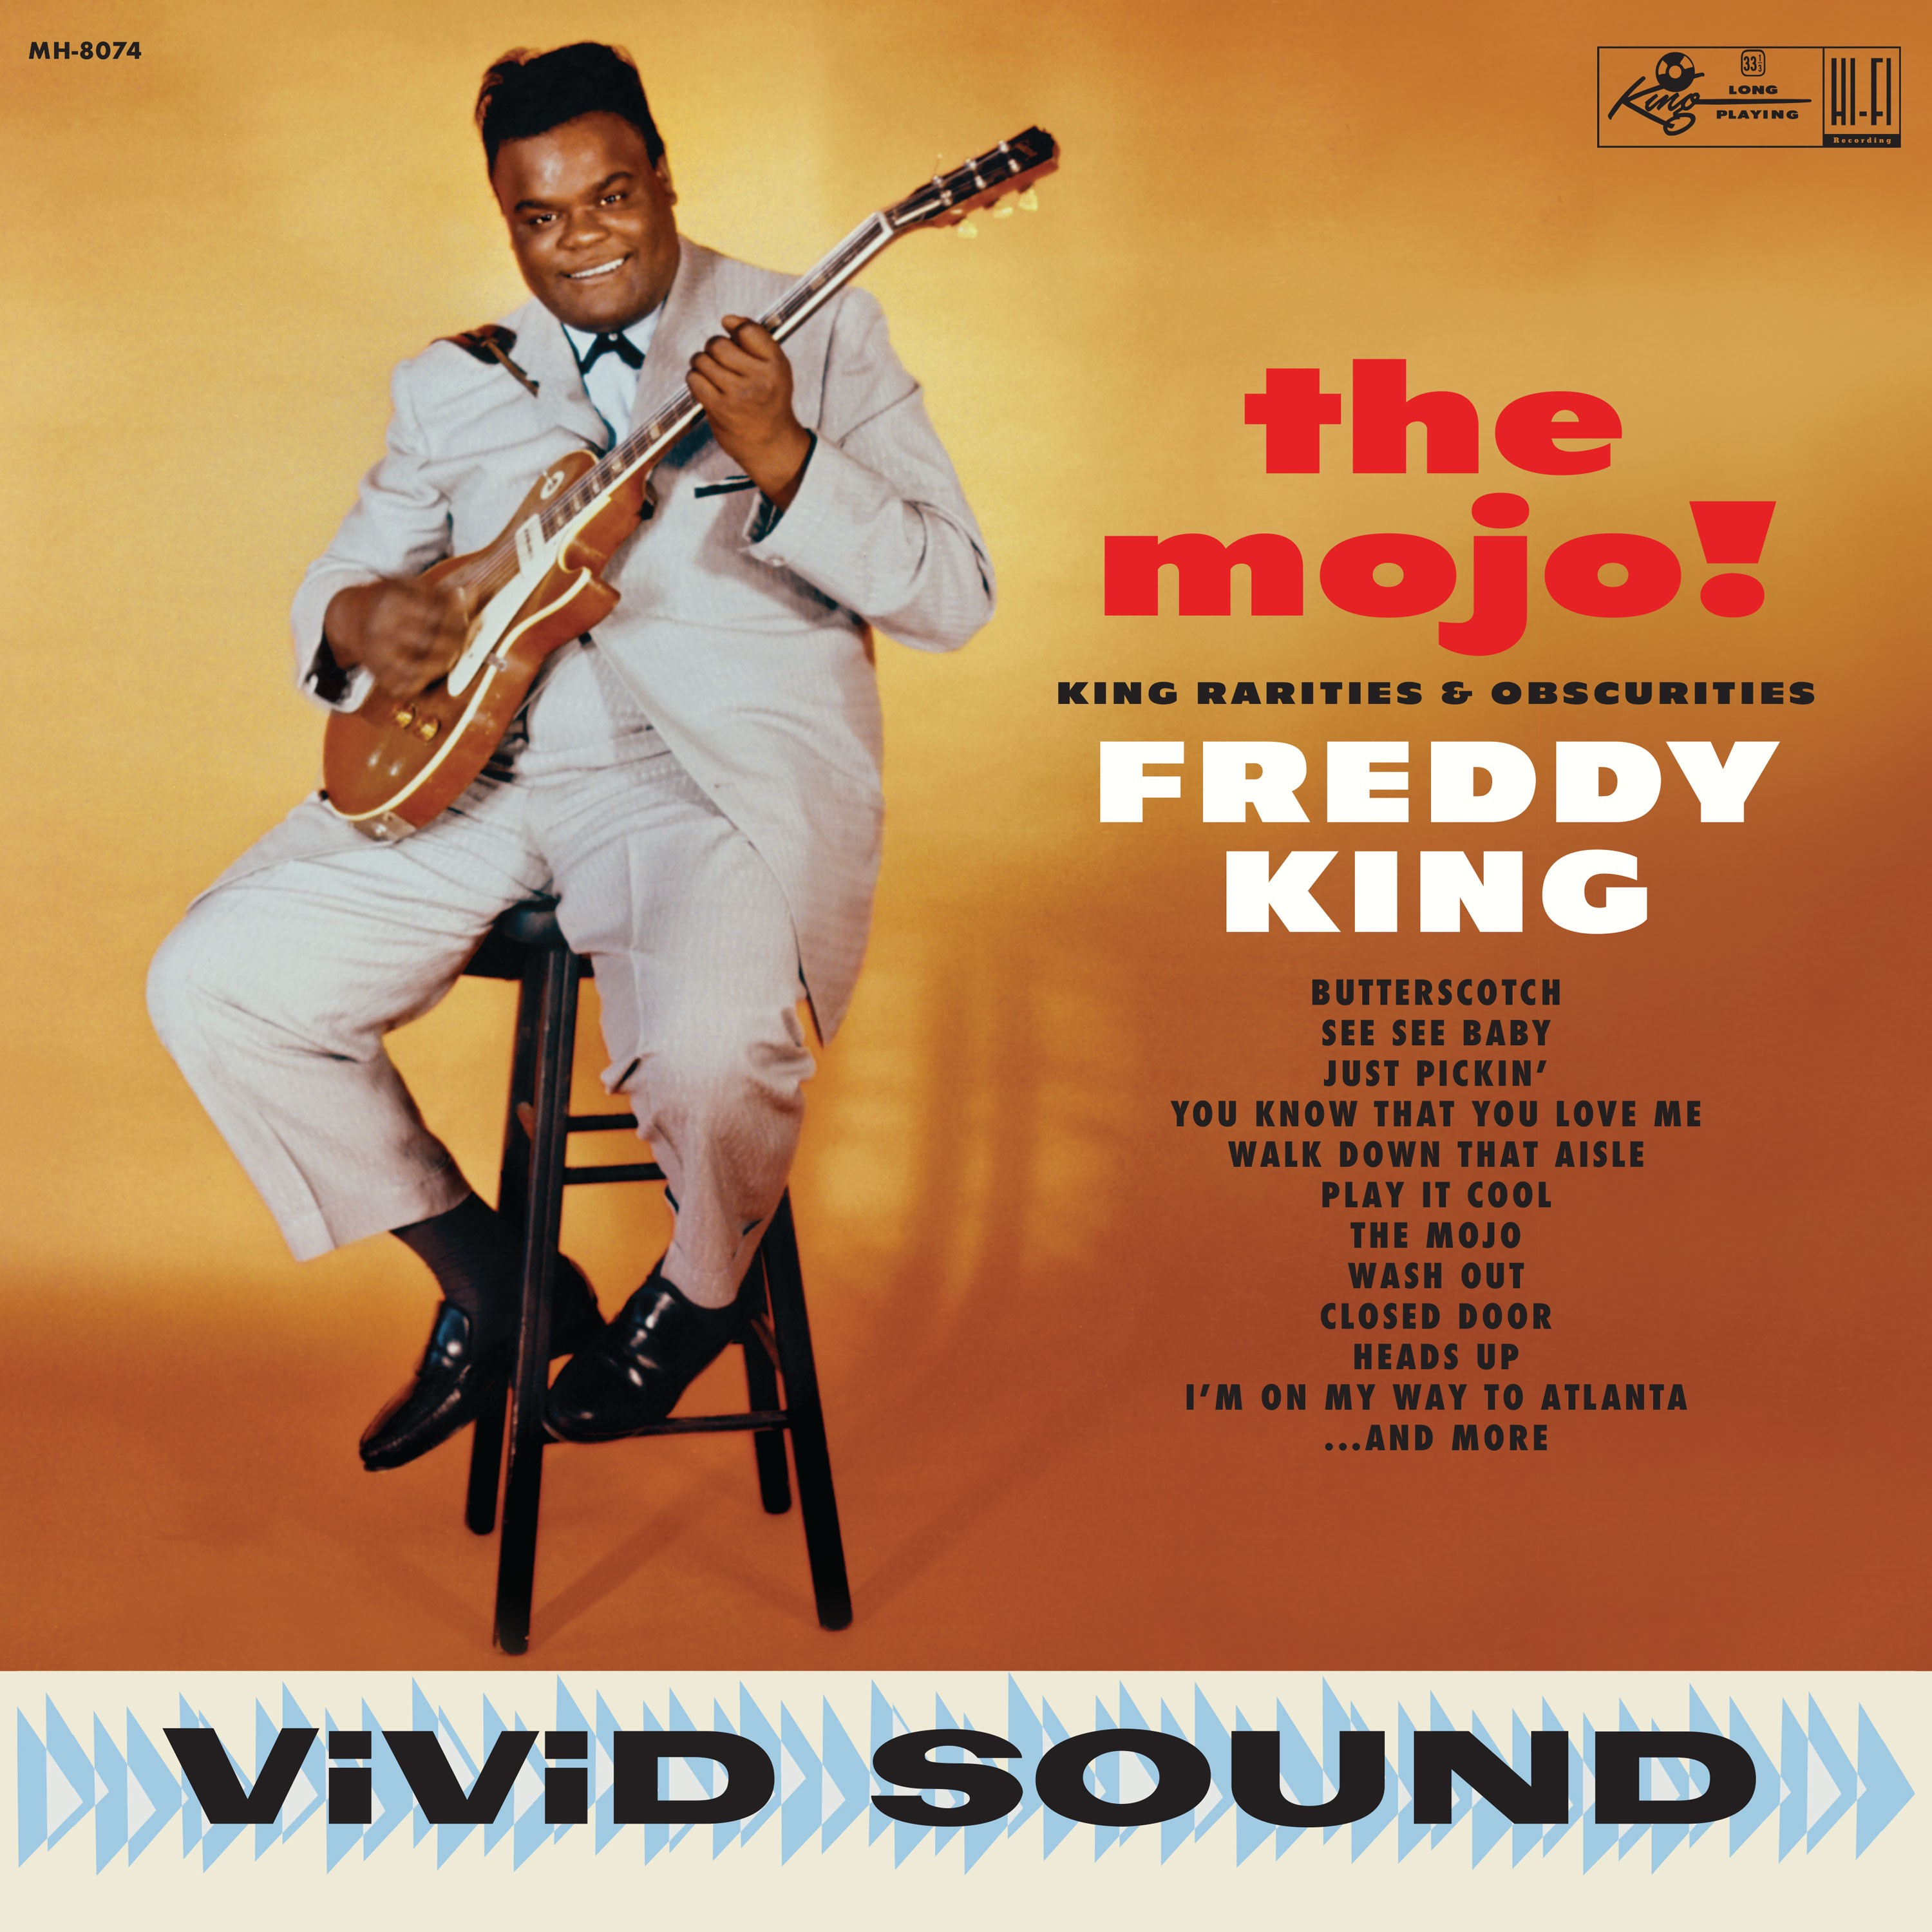 Freddy King - The Mojo! King Rarities & Obscurities [RSD BF 2019]